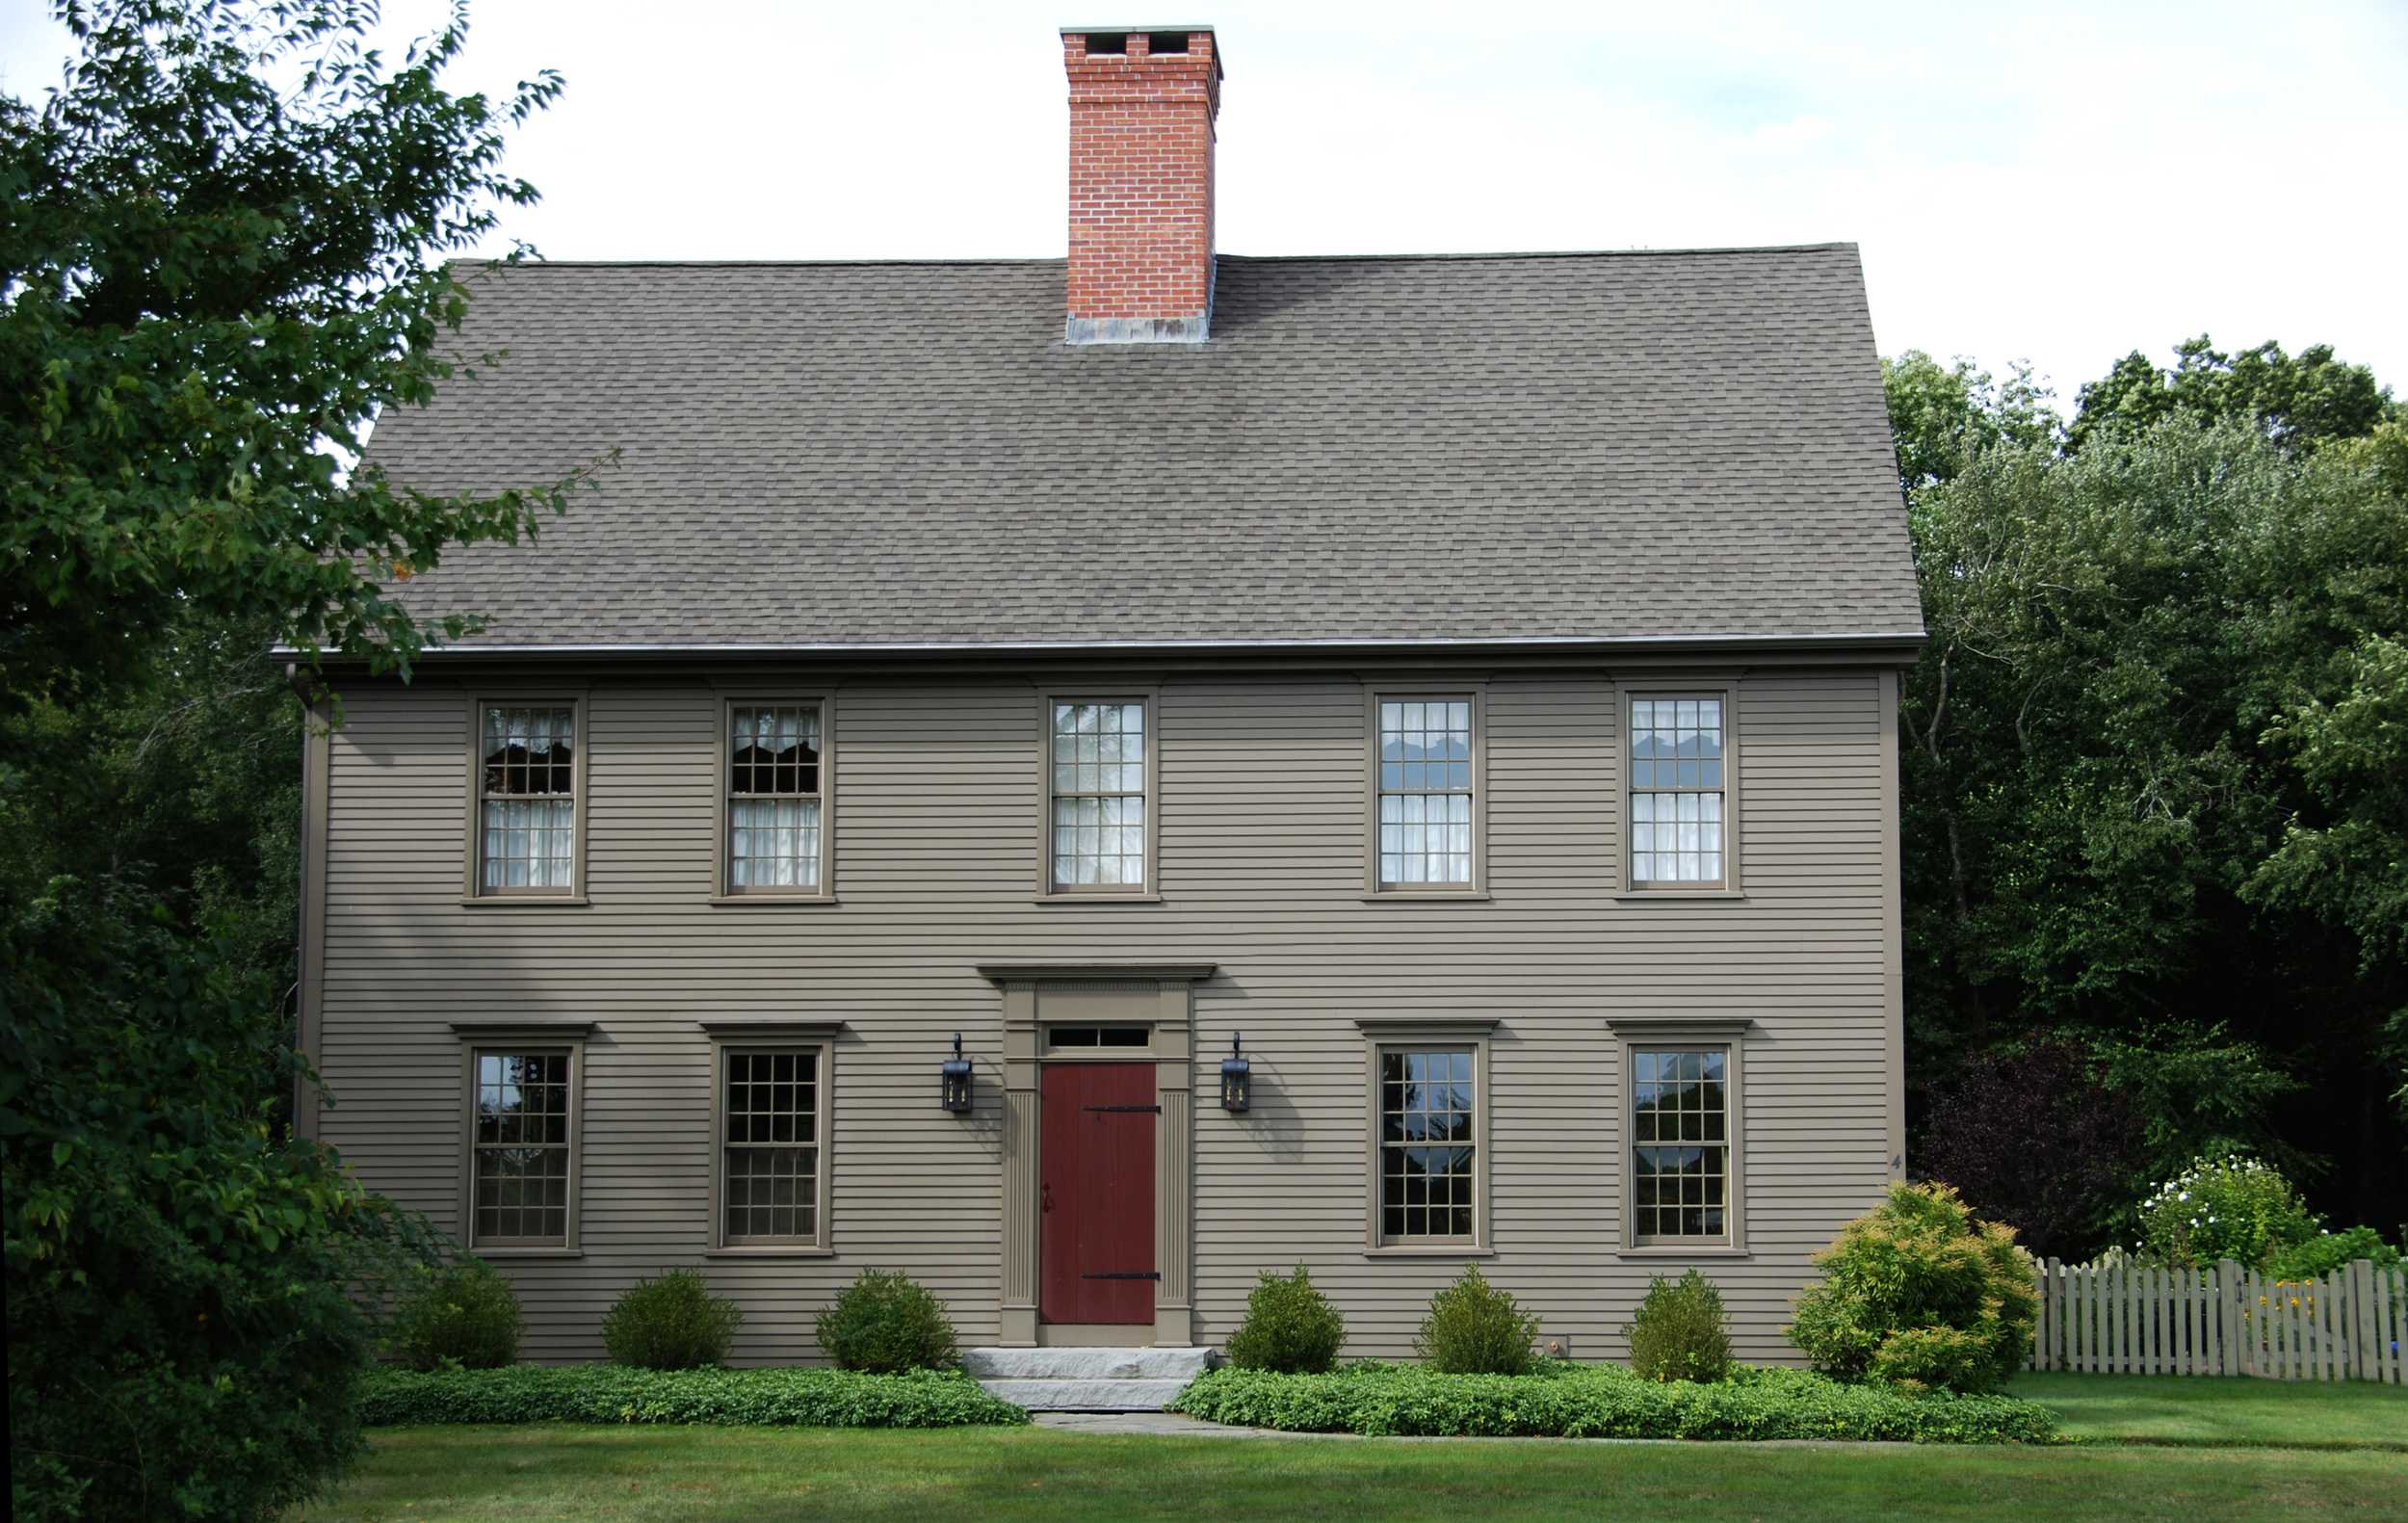 The Colonial Colonial Exterior Trim And Siding The Colonialcolonial Widows And Doors The Colonialcolonial Home Designs The Colonialauthetic Colonial Homes The Colonialsaltbox Home Designs The Colonial Cape Home Designs The Colonialfarmhouse Designs